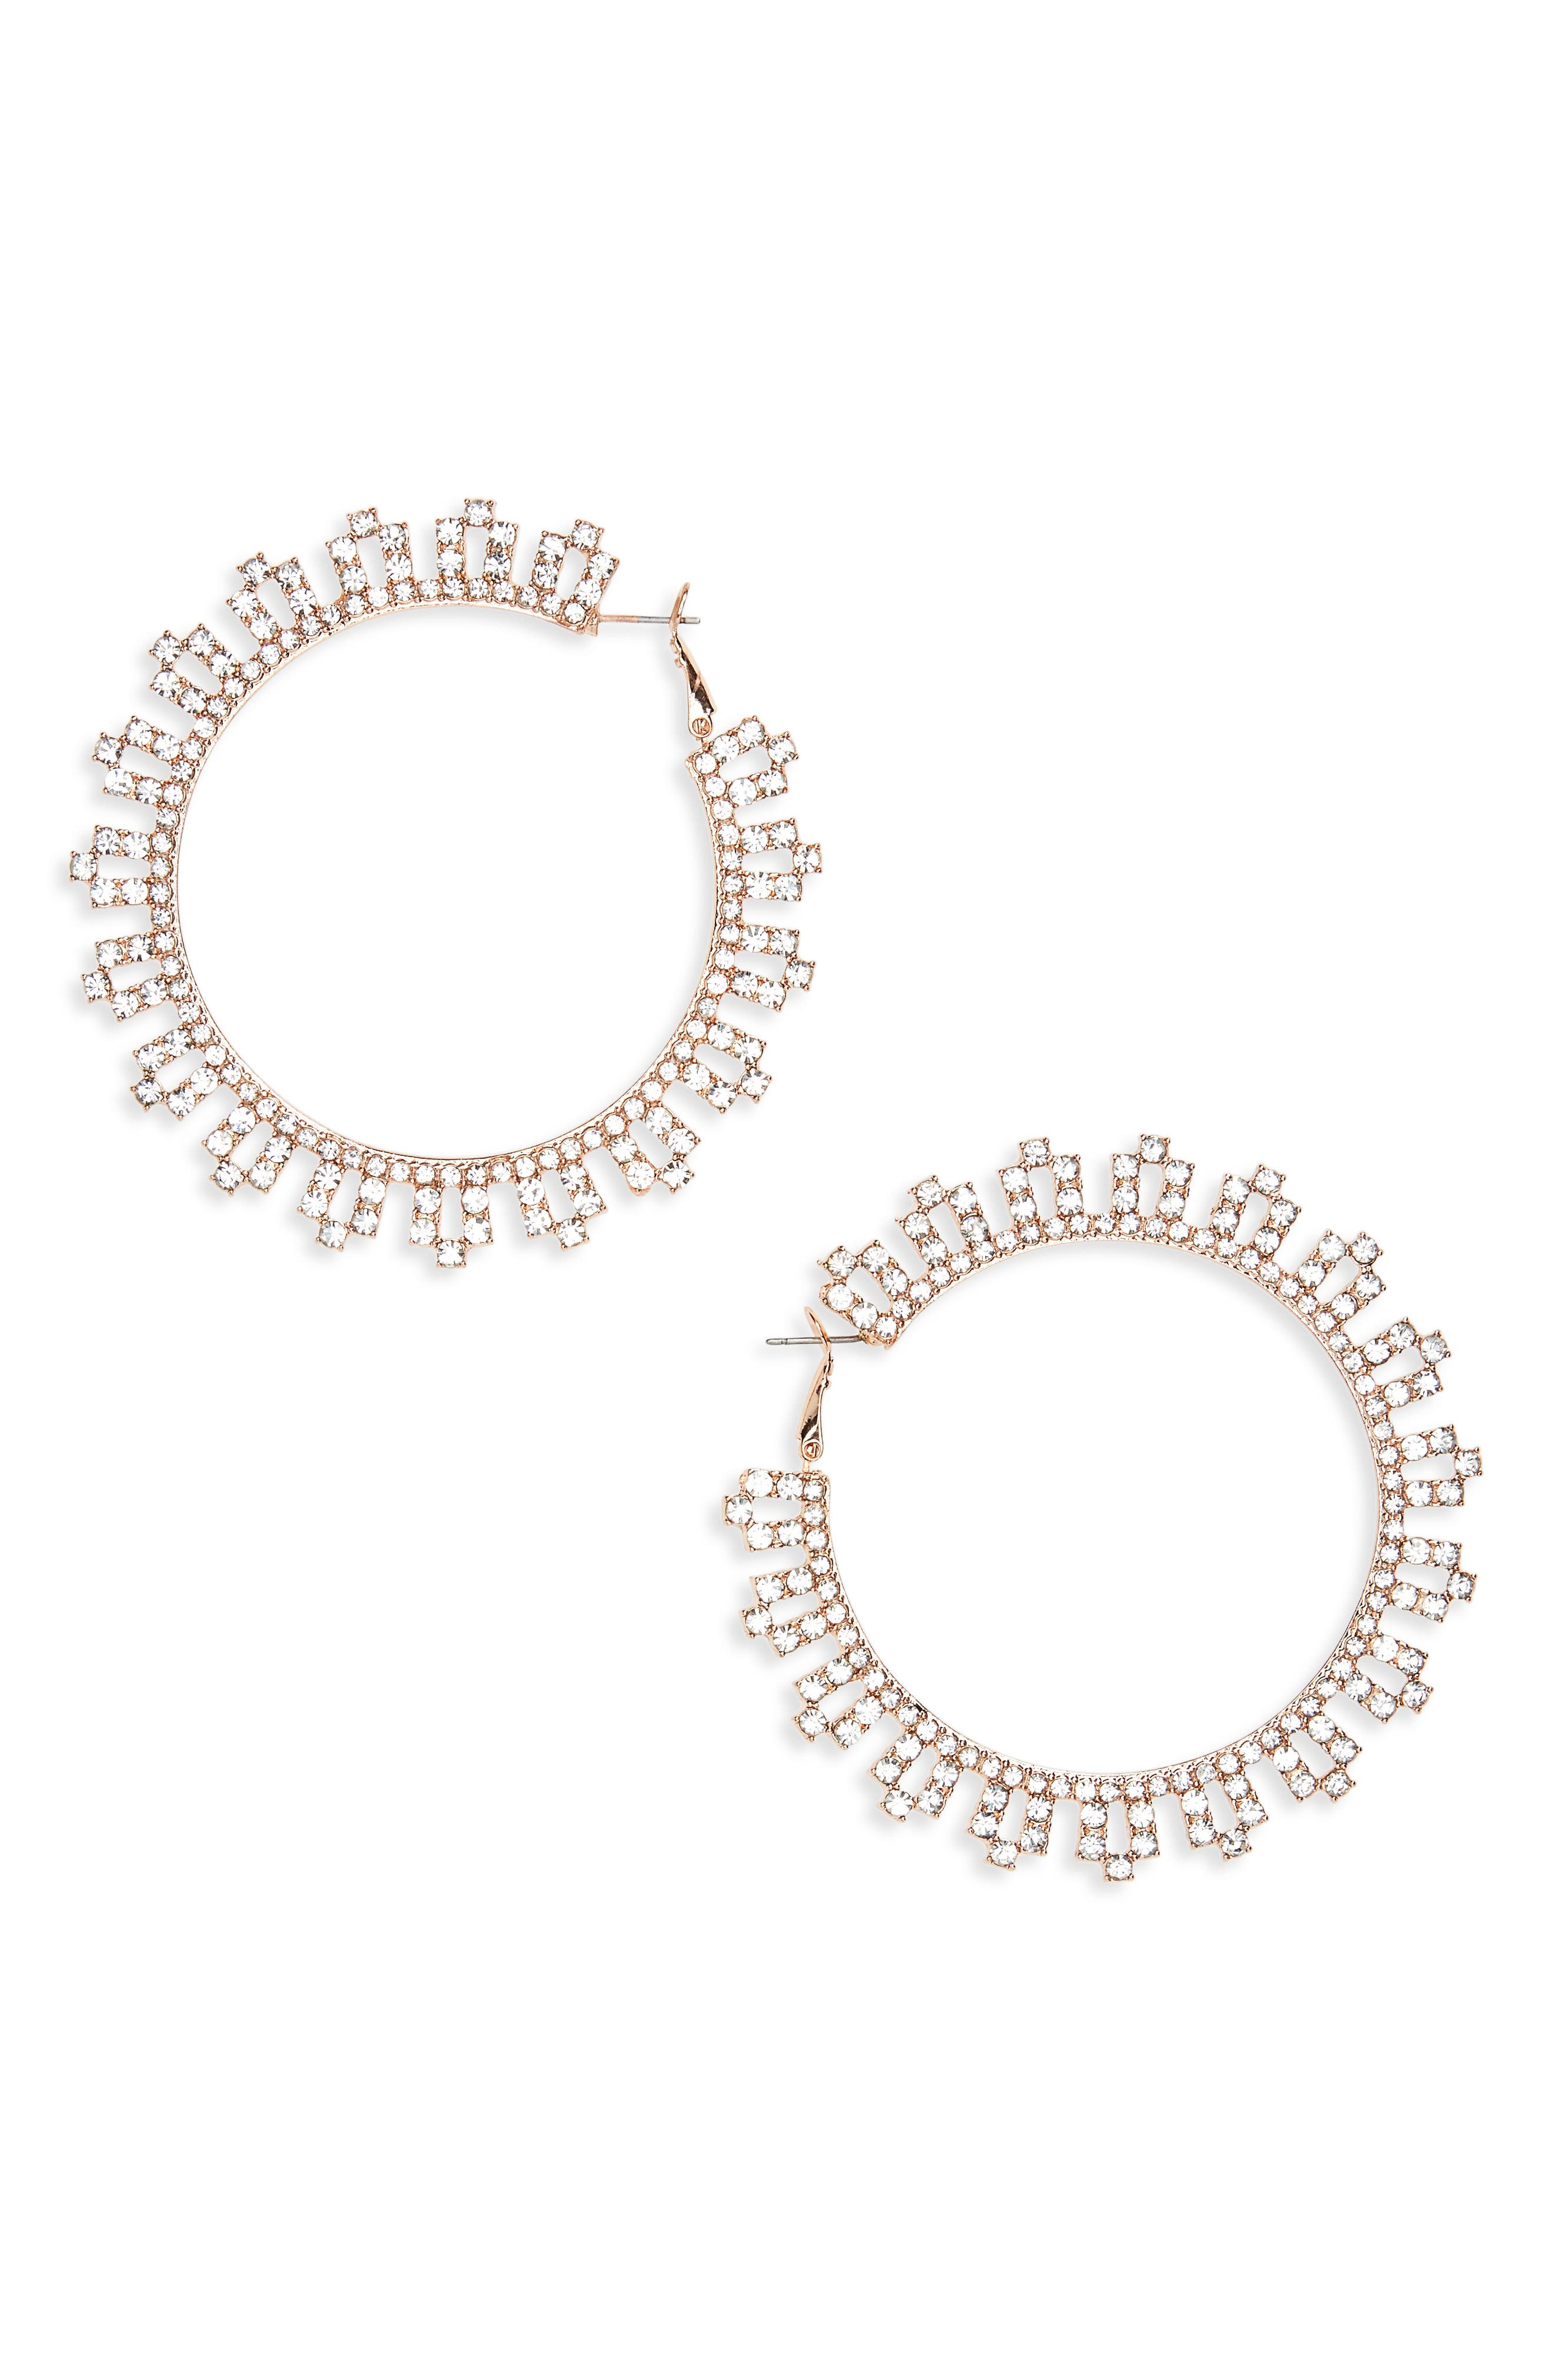 Lace Crystal Statement Earrings,                         Main,                         color, Crystal/ Rose Gold